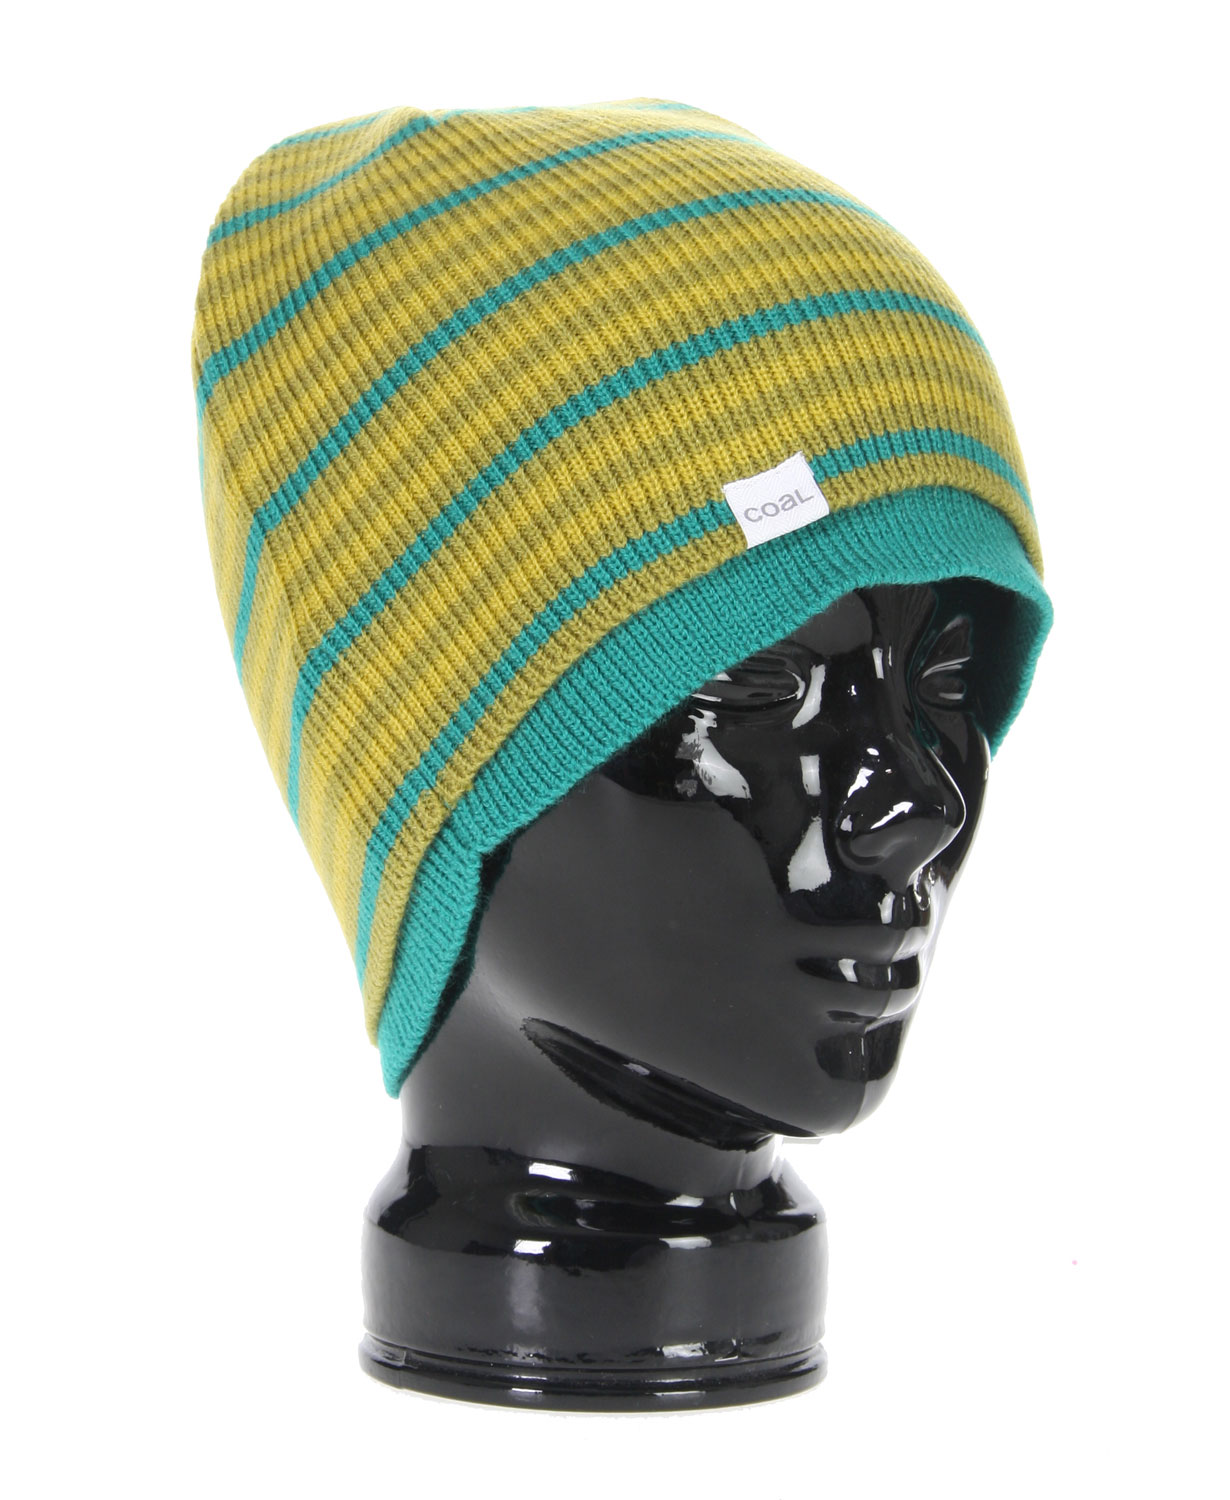 Two fine knit, single layer beanies, combined to create a beanie with a street look and modern fit. Cashmere like Acrylice100% Cashmere-like Acrylic - $18.95